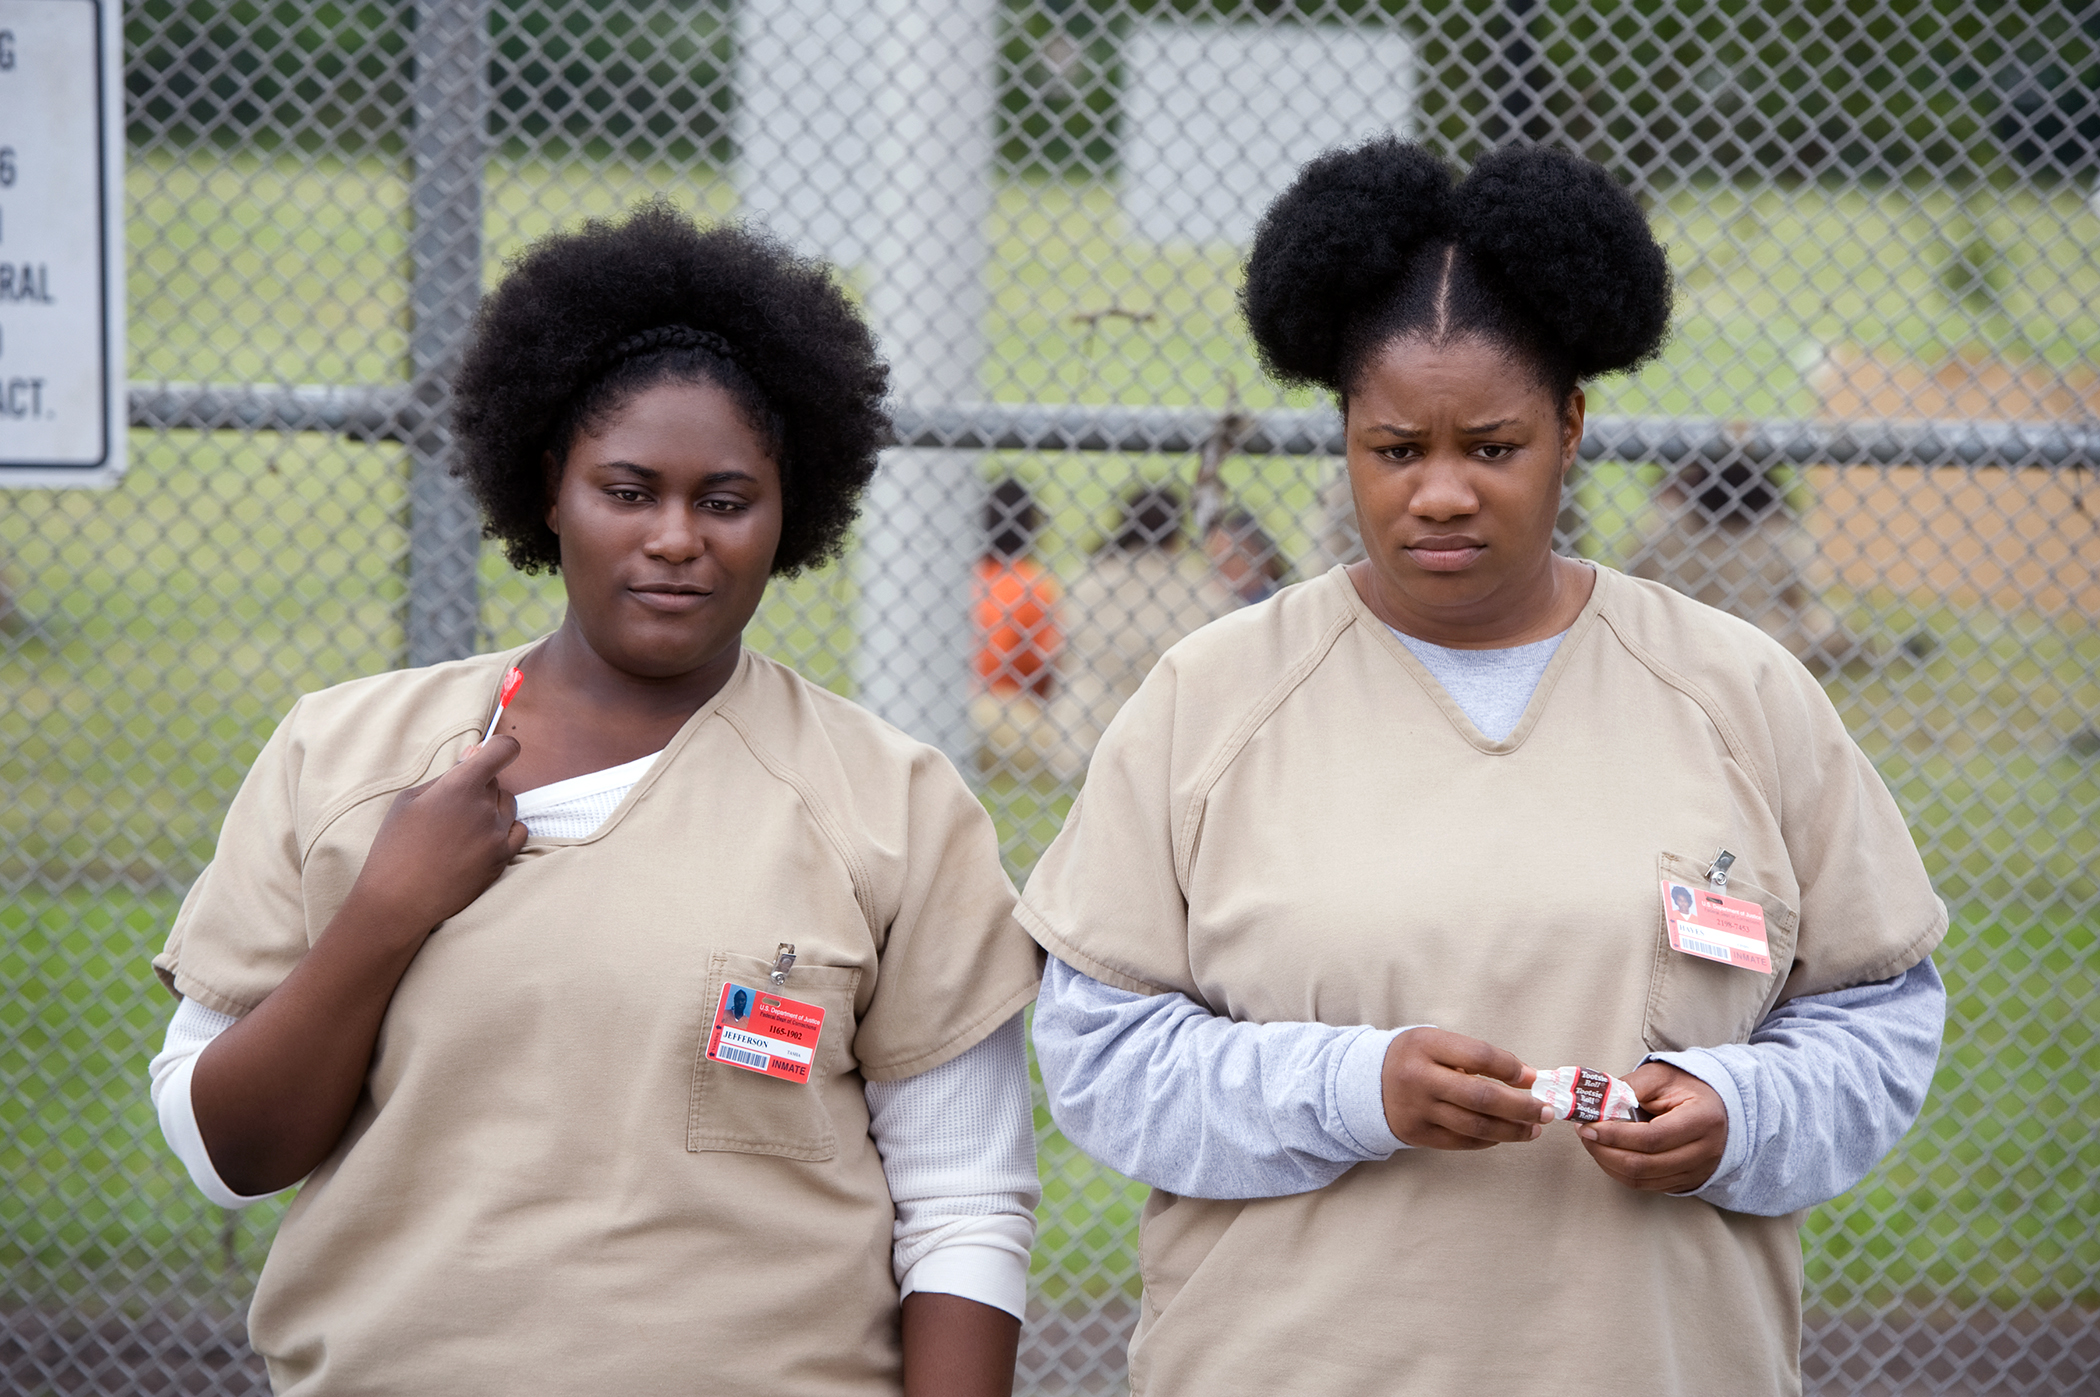 Season 3 of Netflix's hit show, Orange is the New Black,  dropped in June.